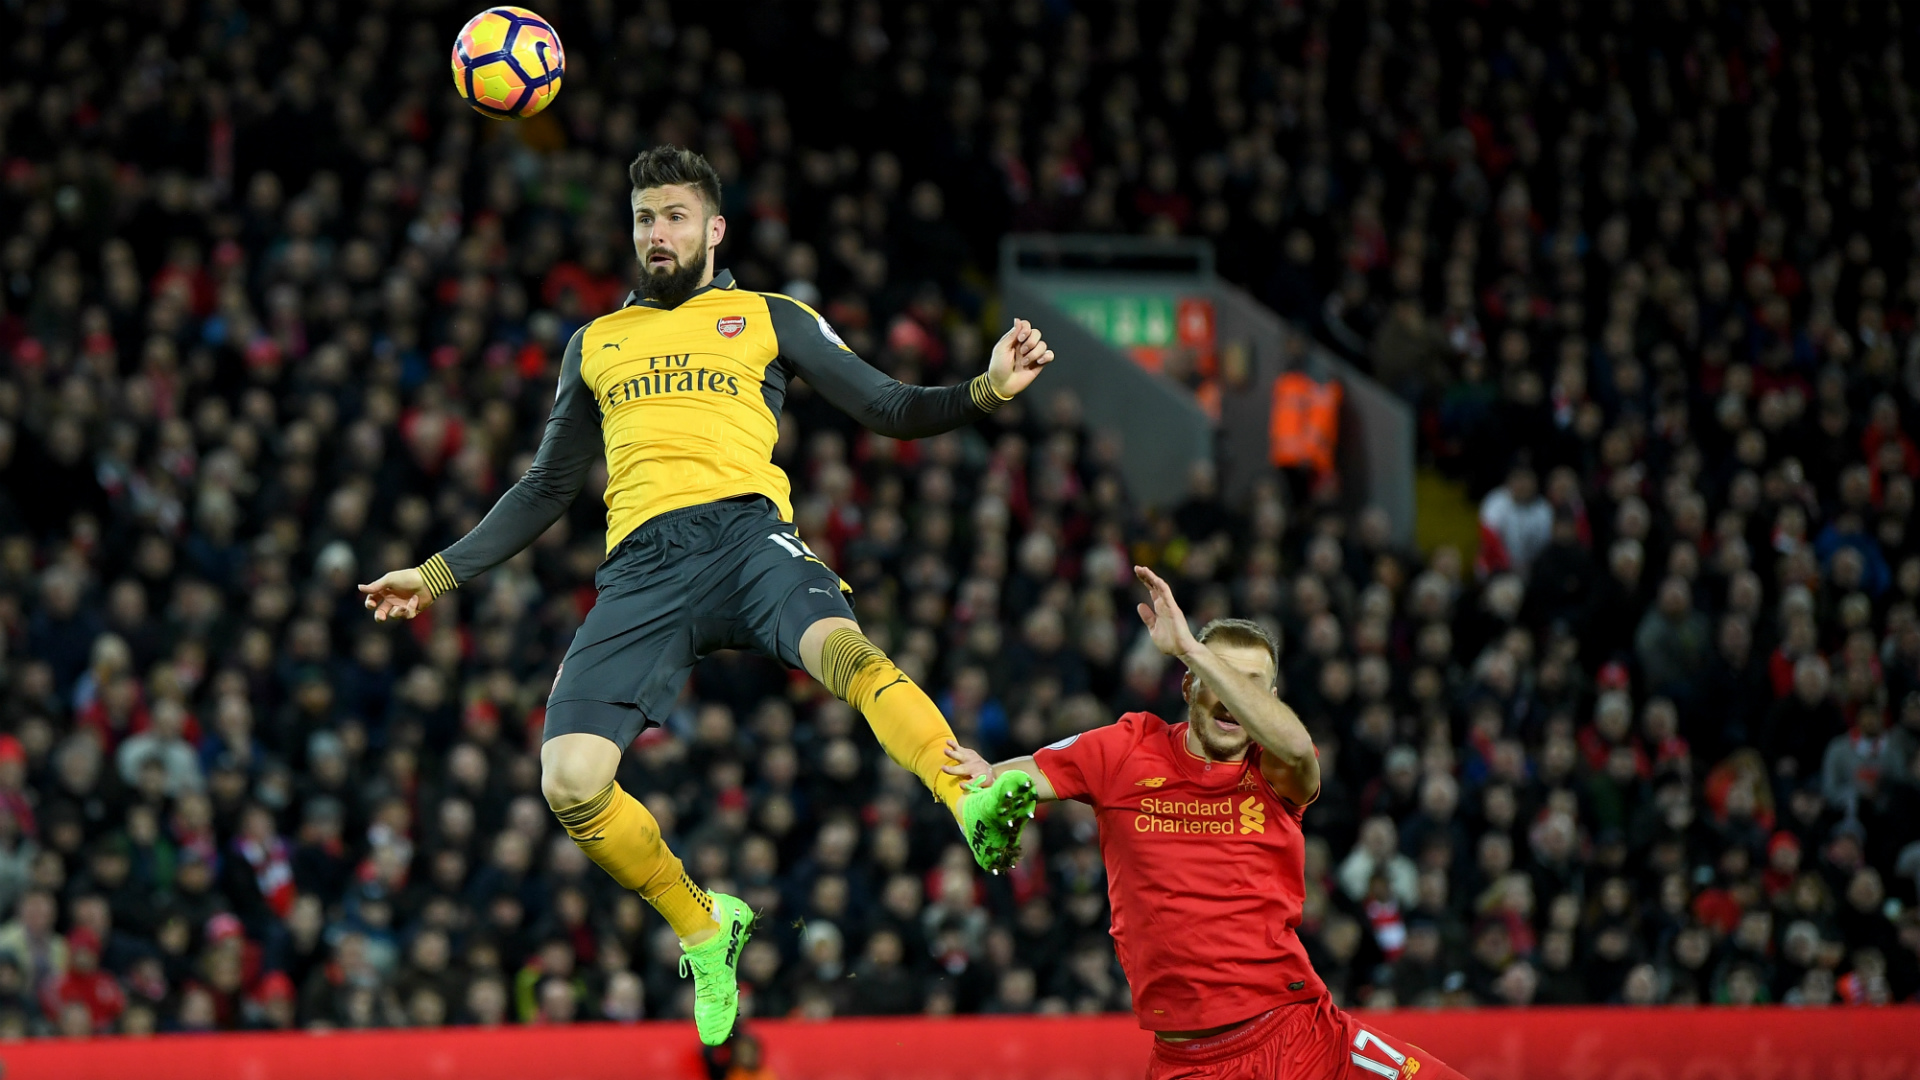 Is Wenger really looking to replace Arsenal's Mustafi?